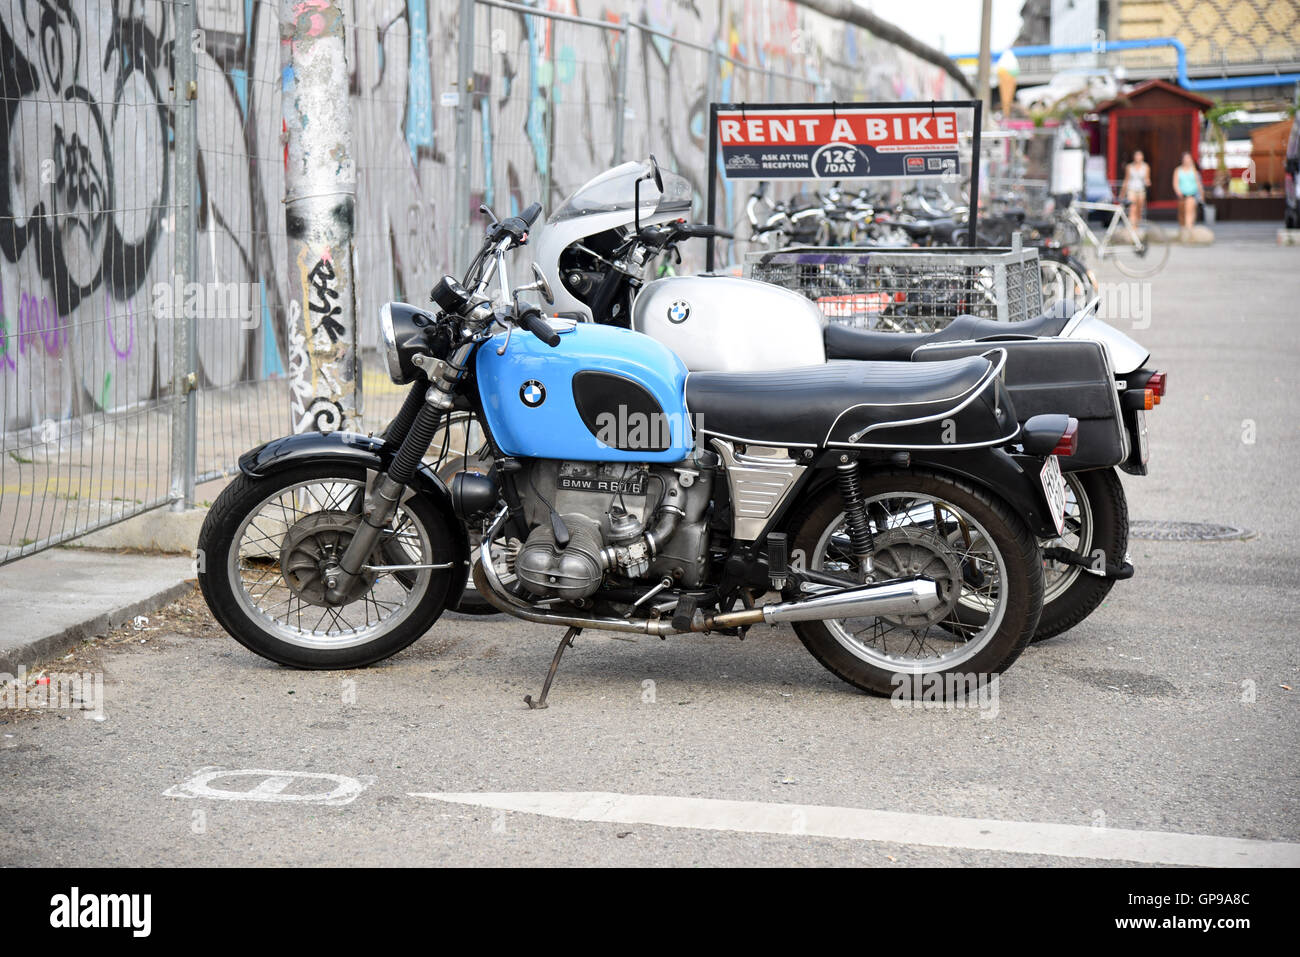 old bmw bike motorbike vintage rent a bike Stock Photo